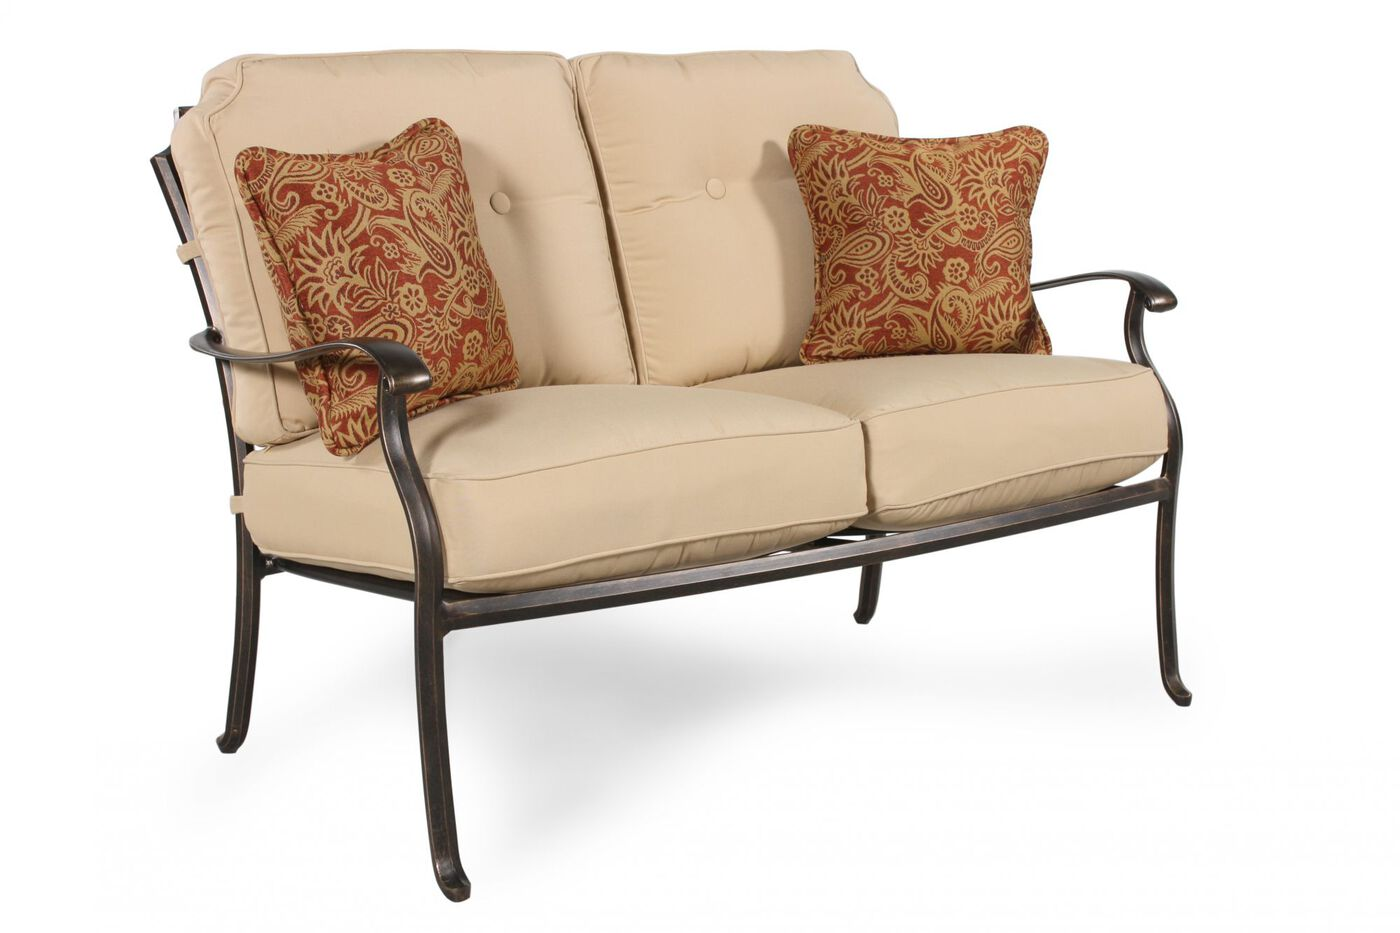 Agio Heritage Select Patio Loveseat